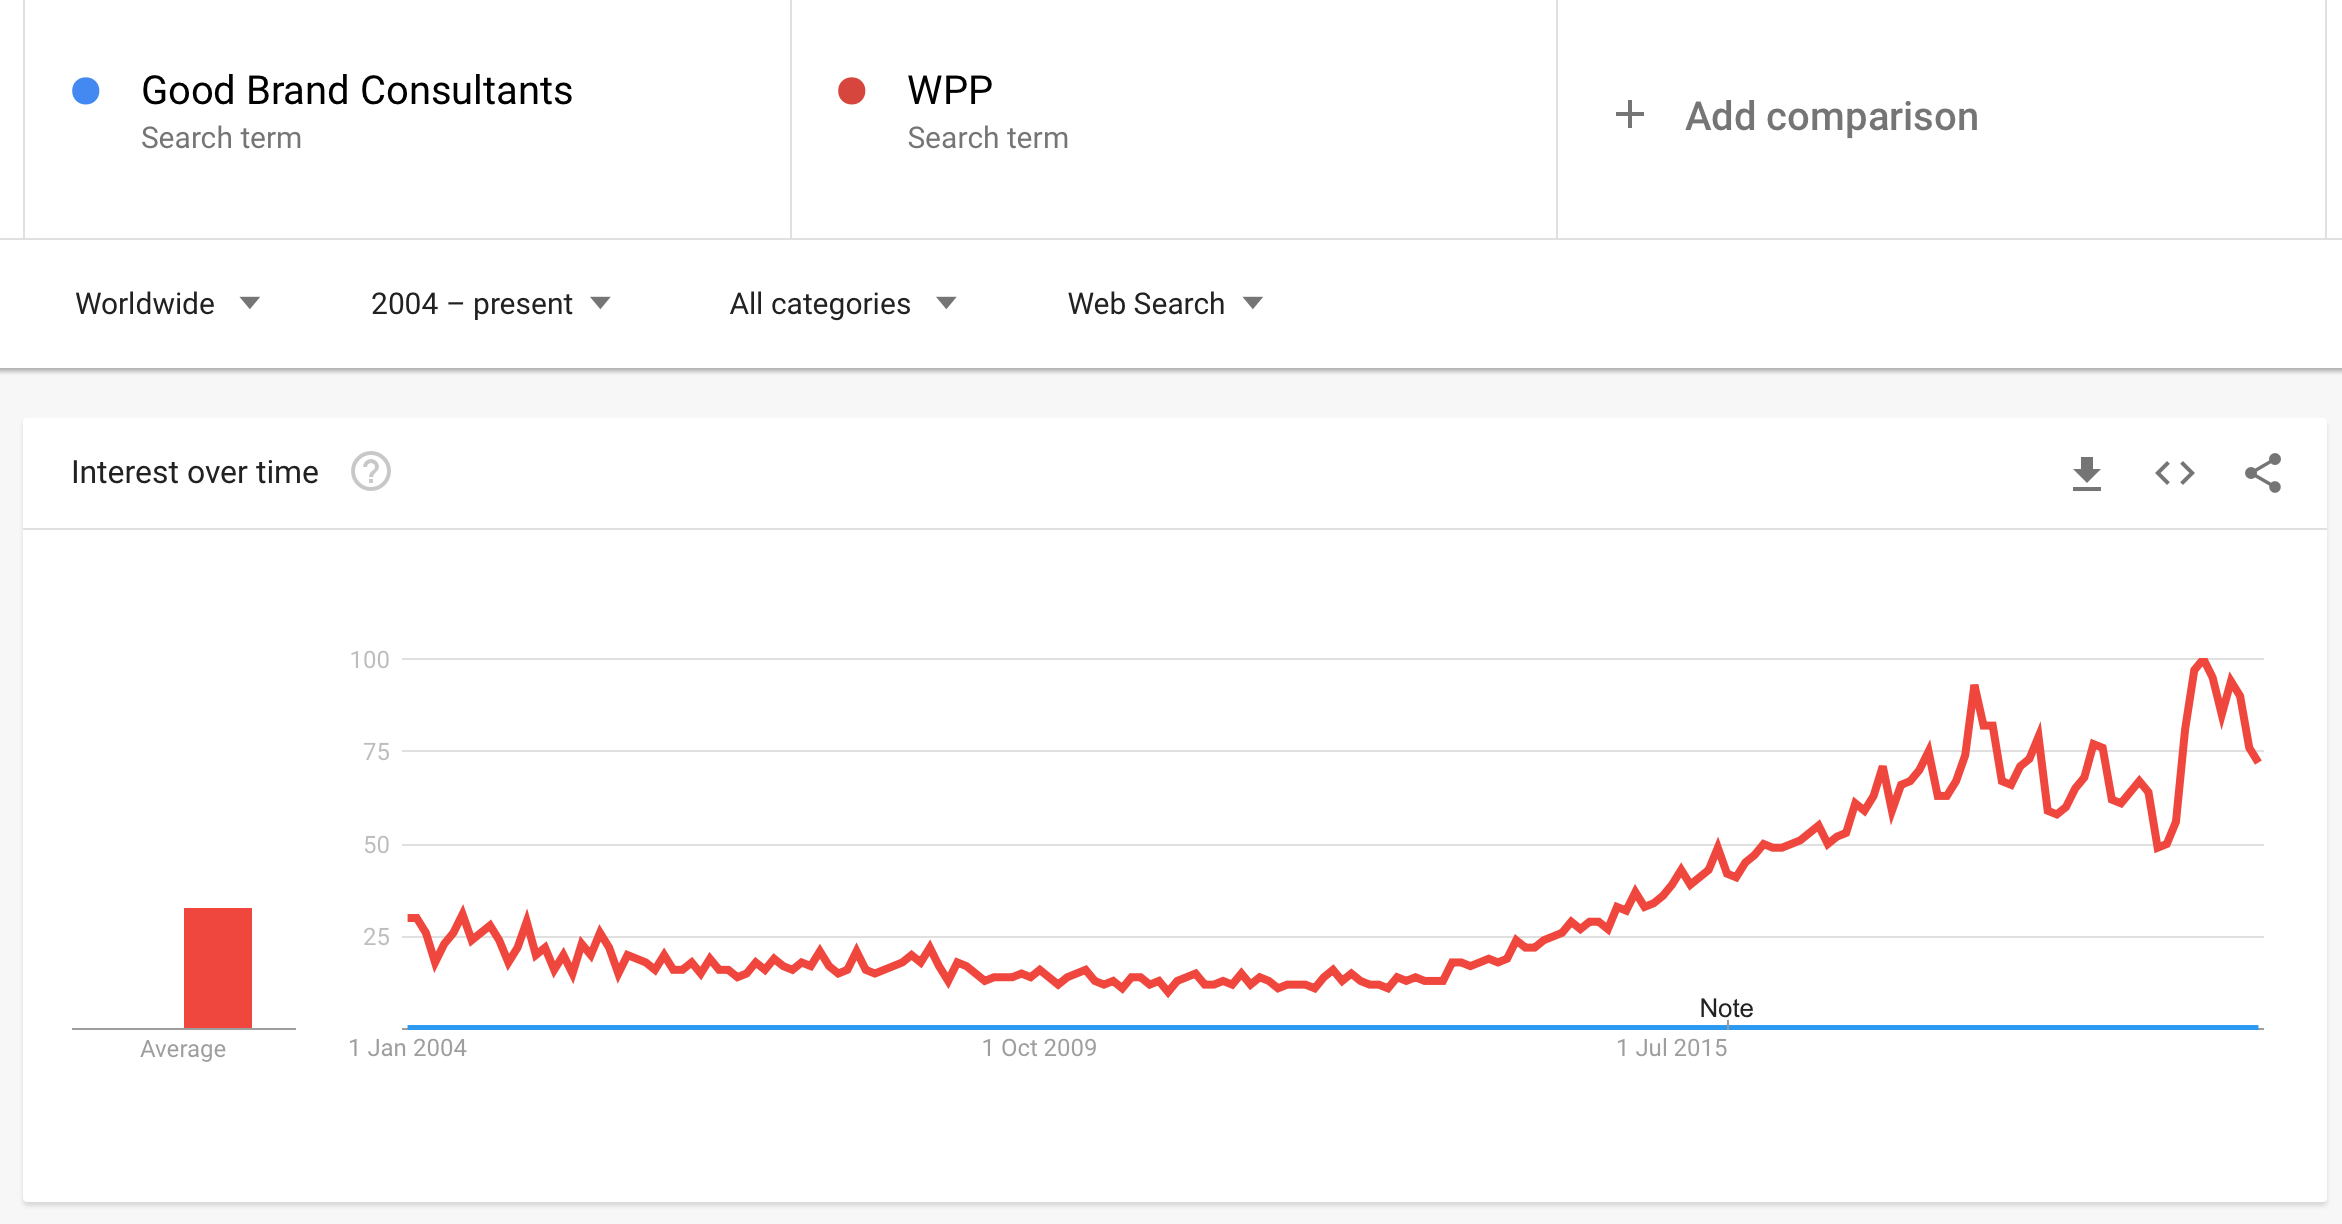 Good Brand Consultants WPP Share of Search Results